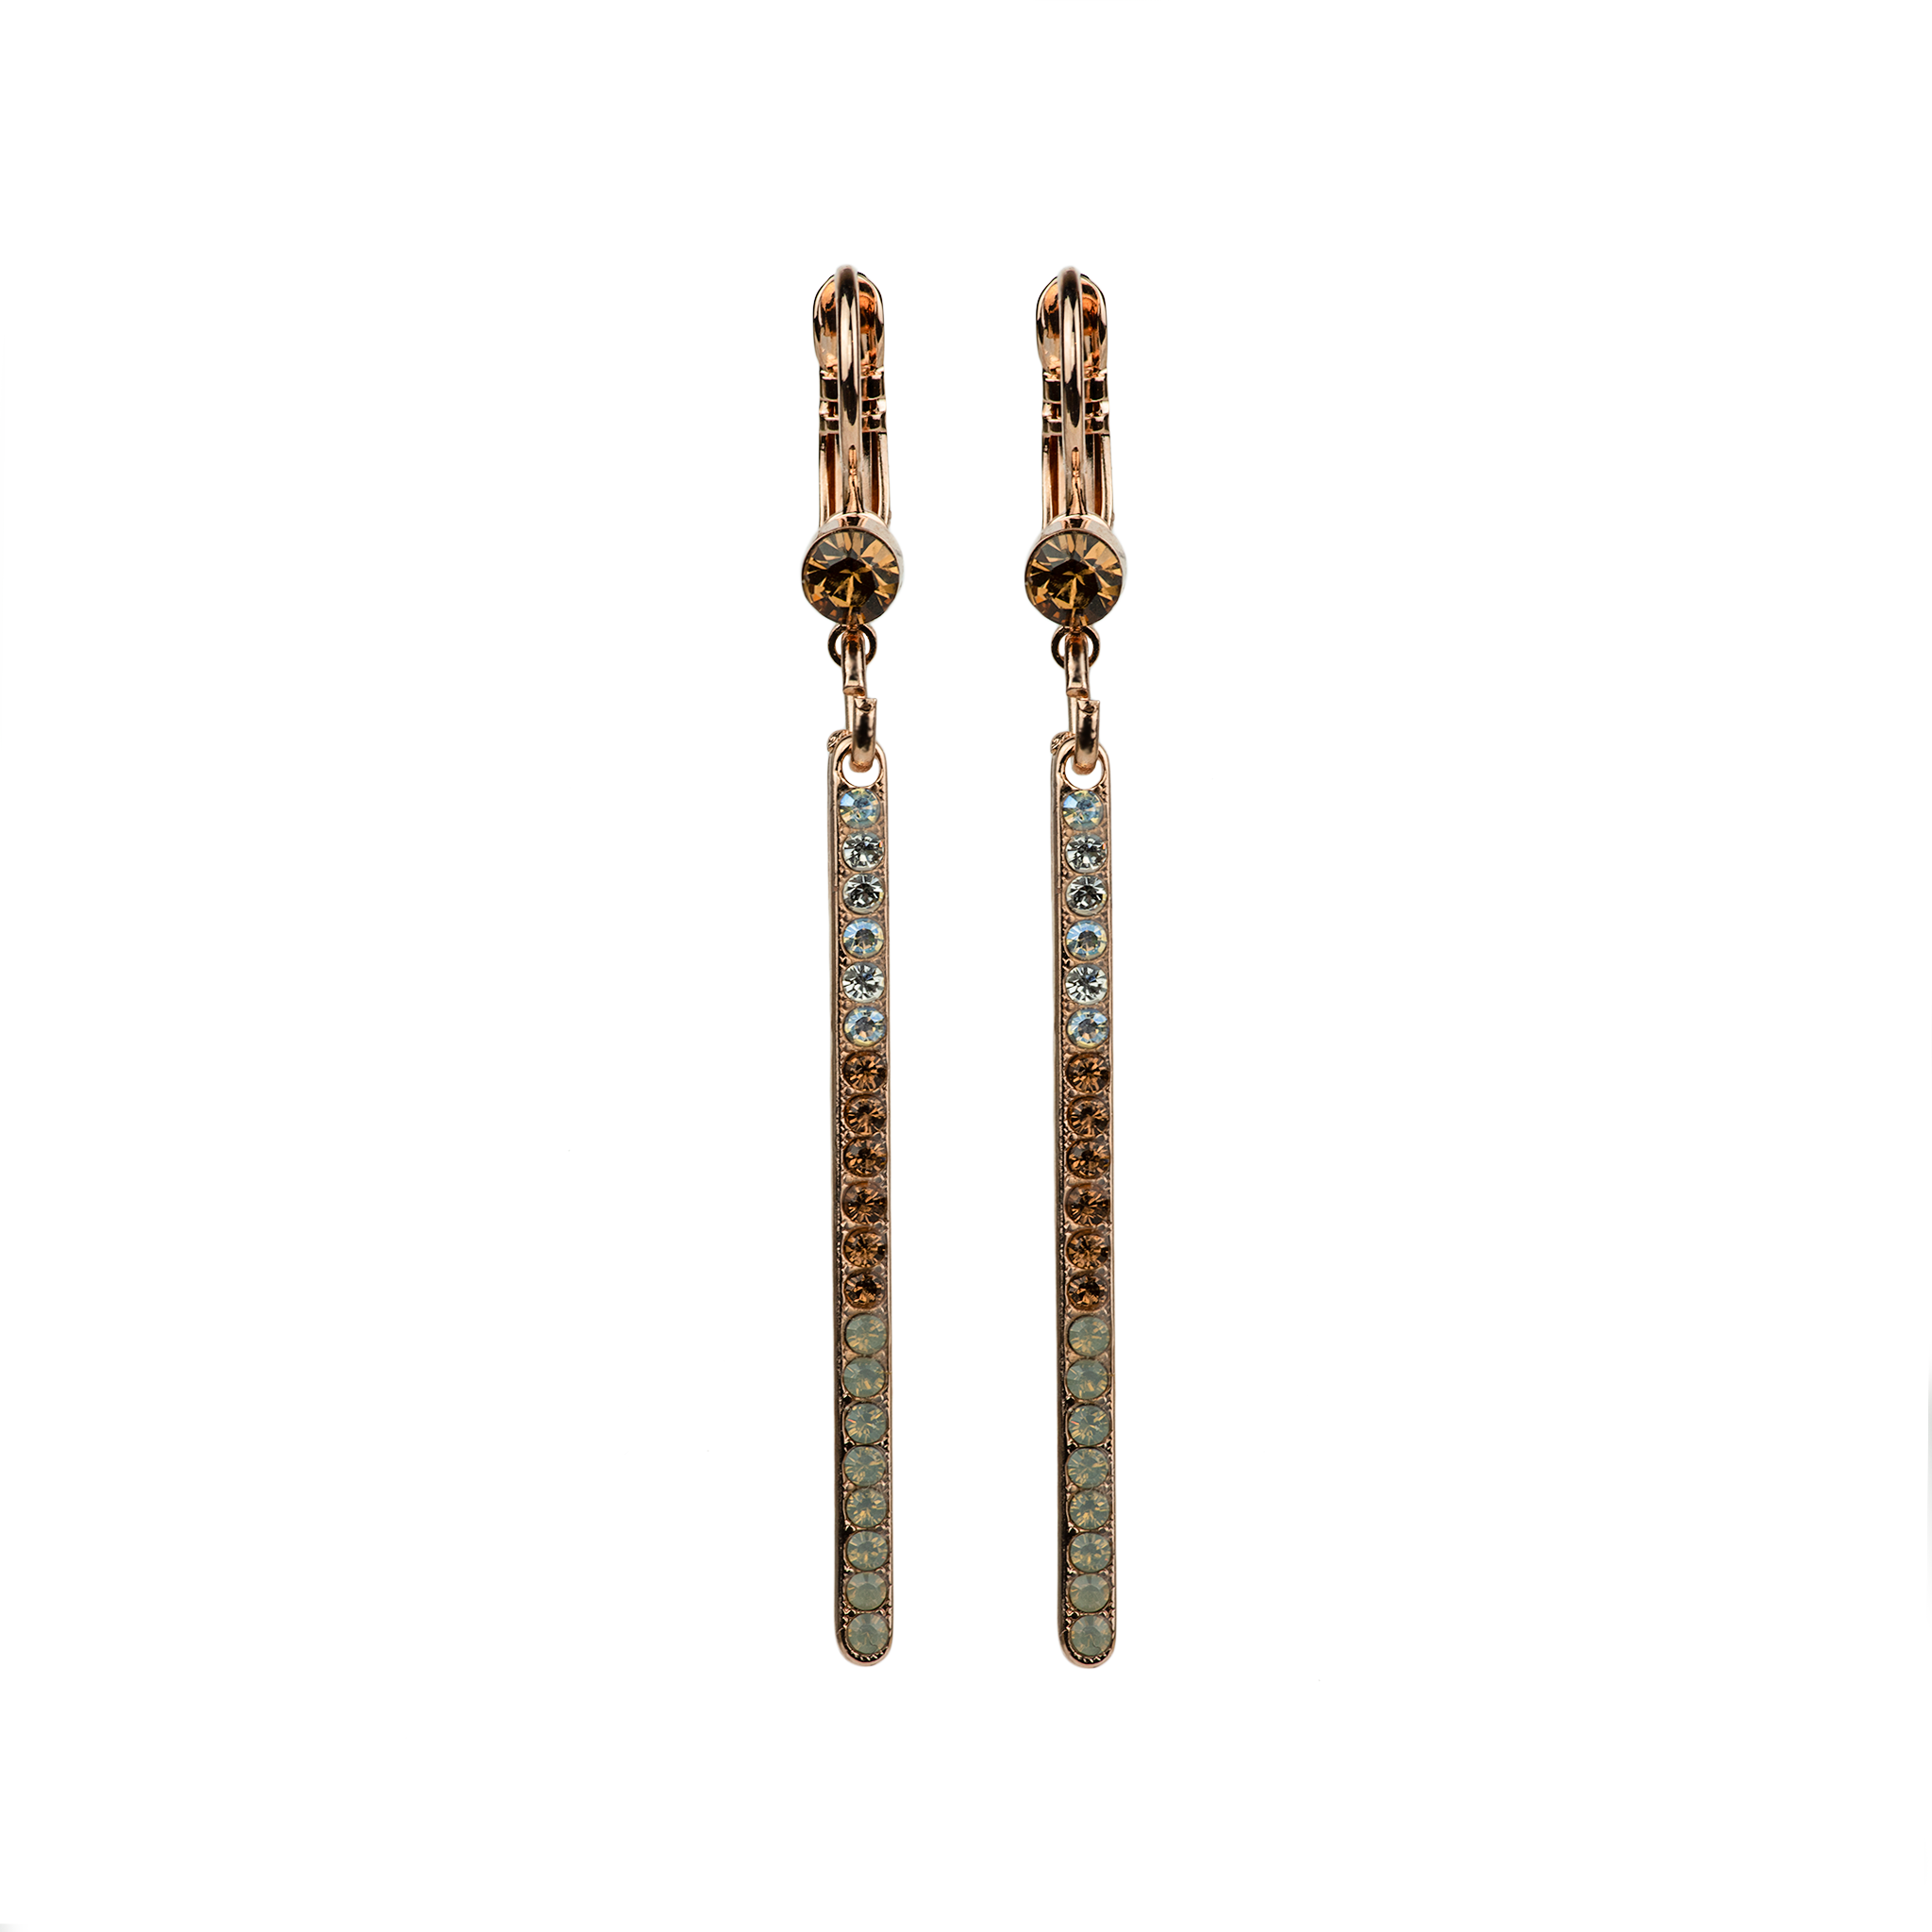 "[Rose Gold] Petite Bar Earrings ""Champagne & Caviar"""